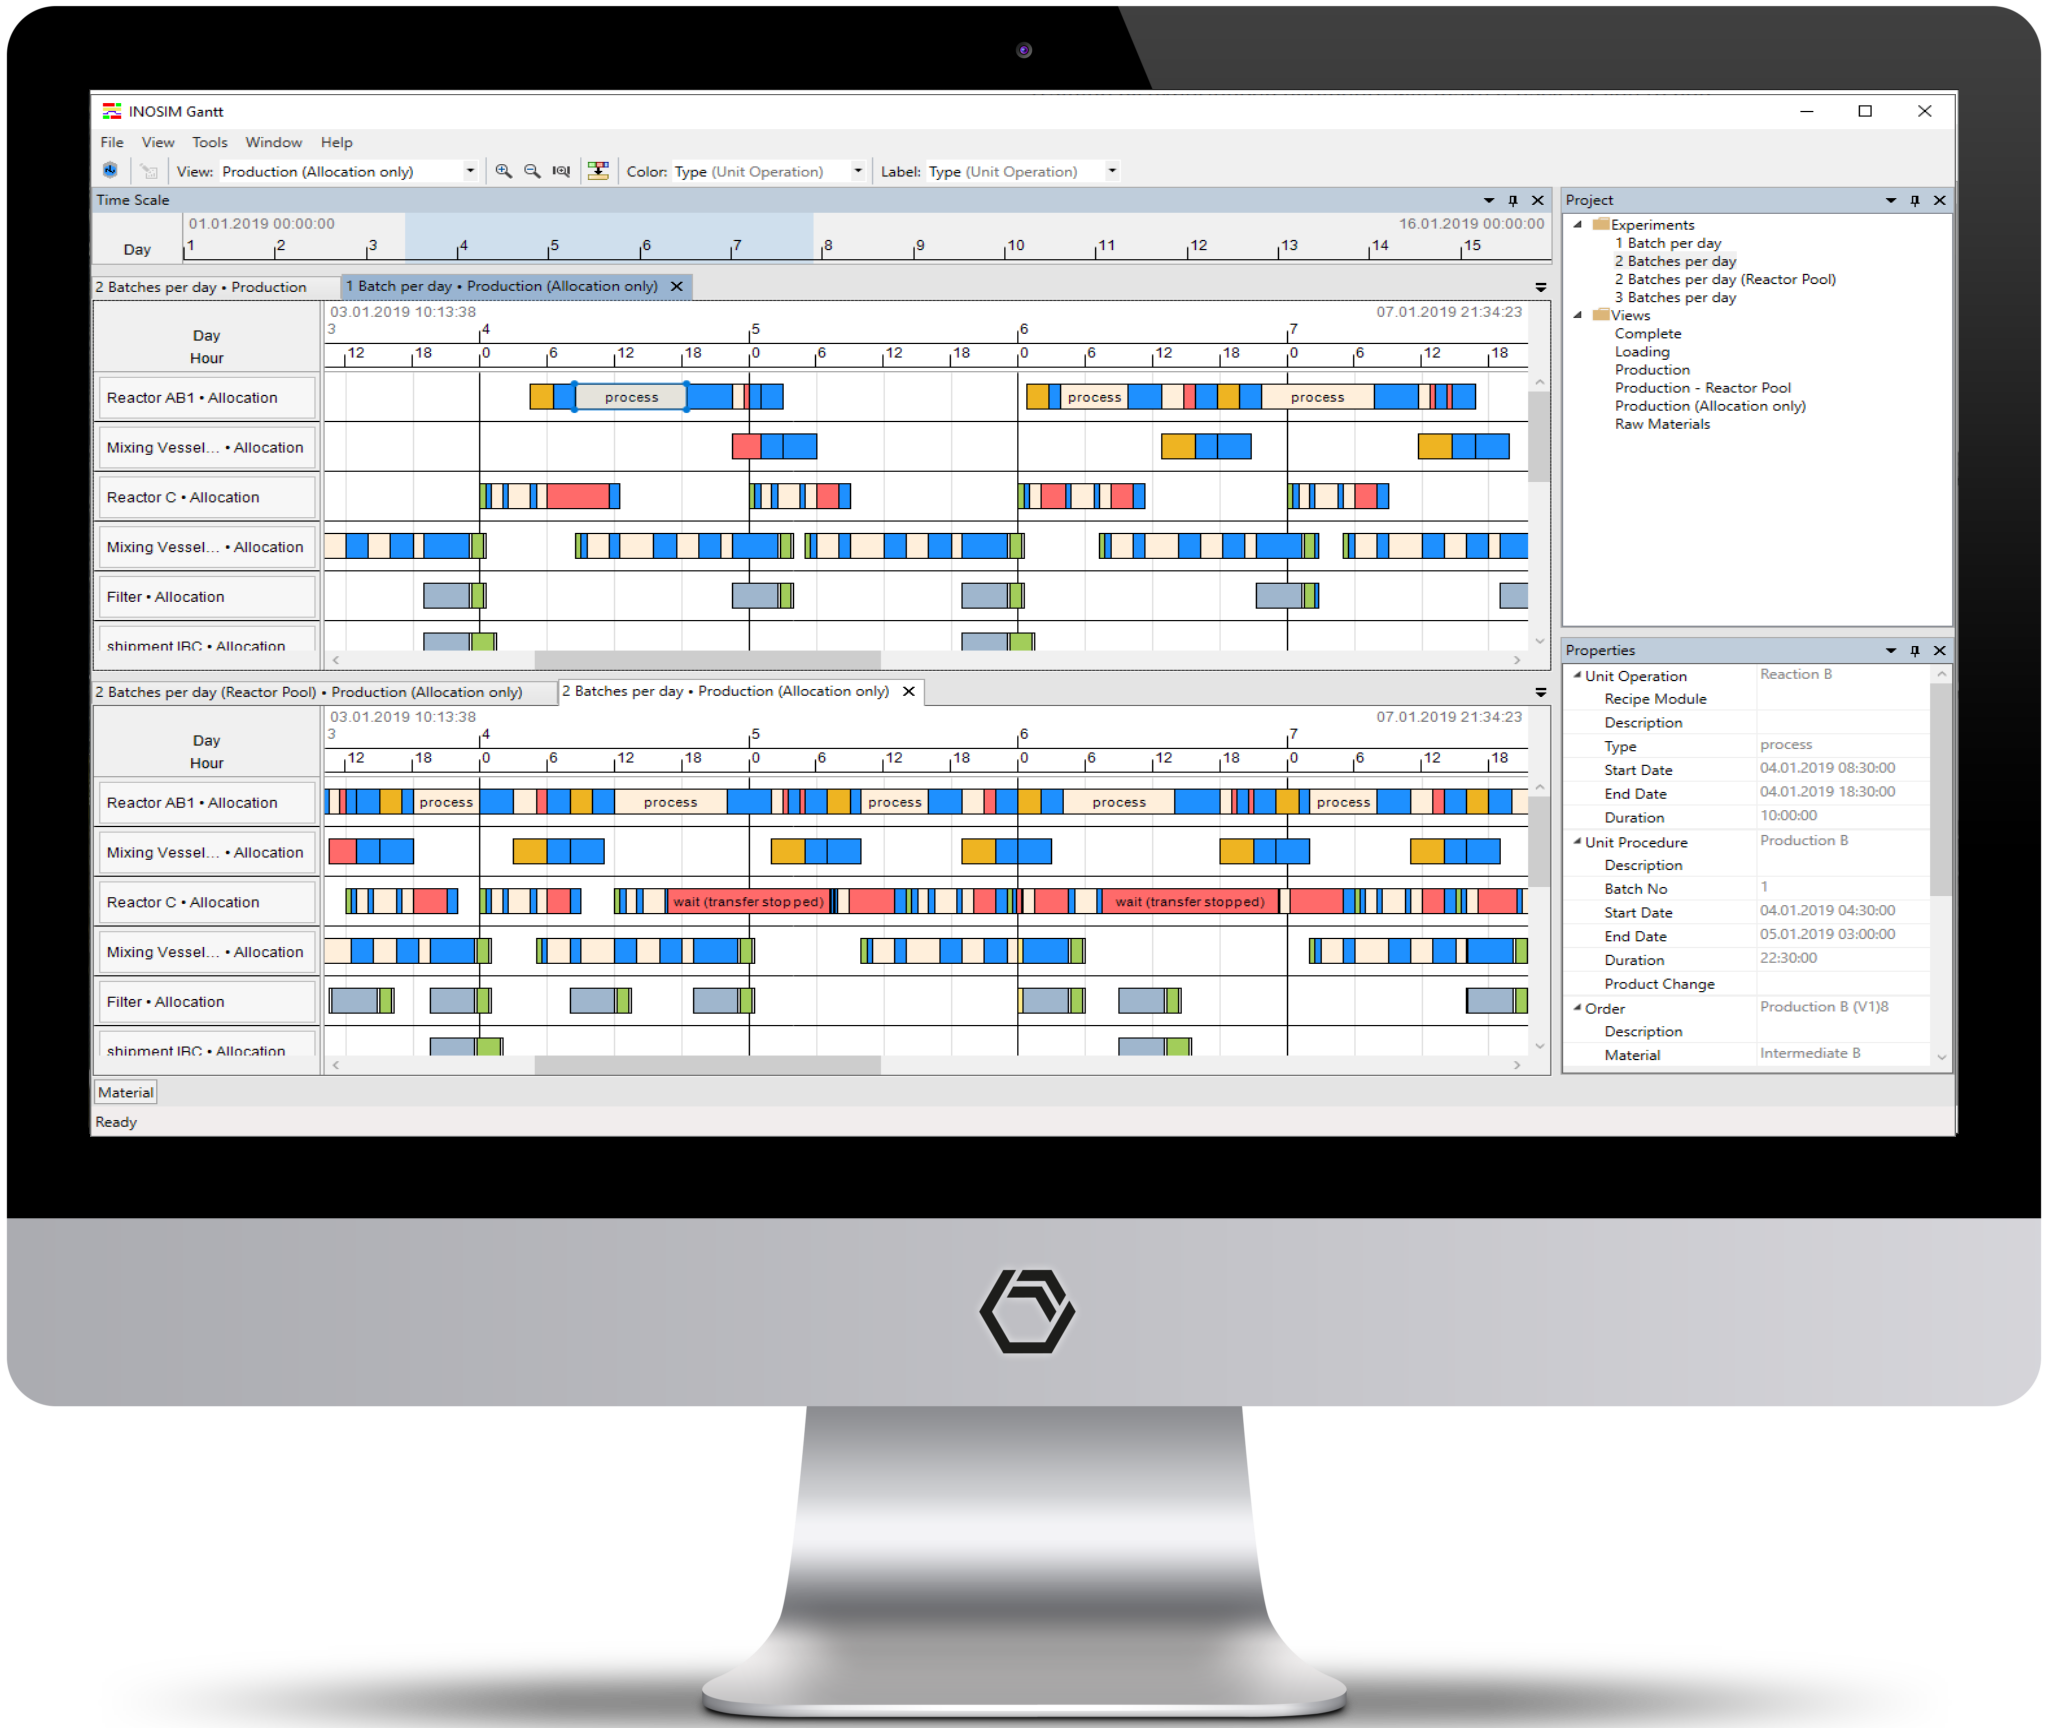 INOSIM Gantt Chart can display the resuts of several simulation runs side-by-side